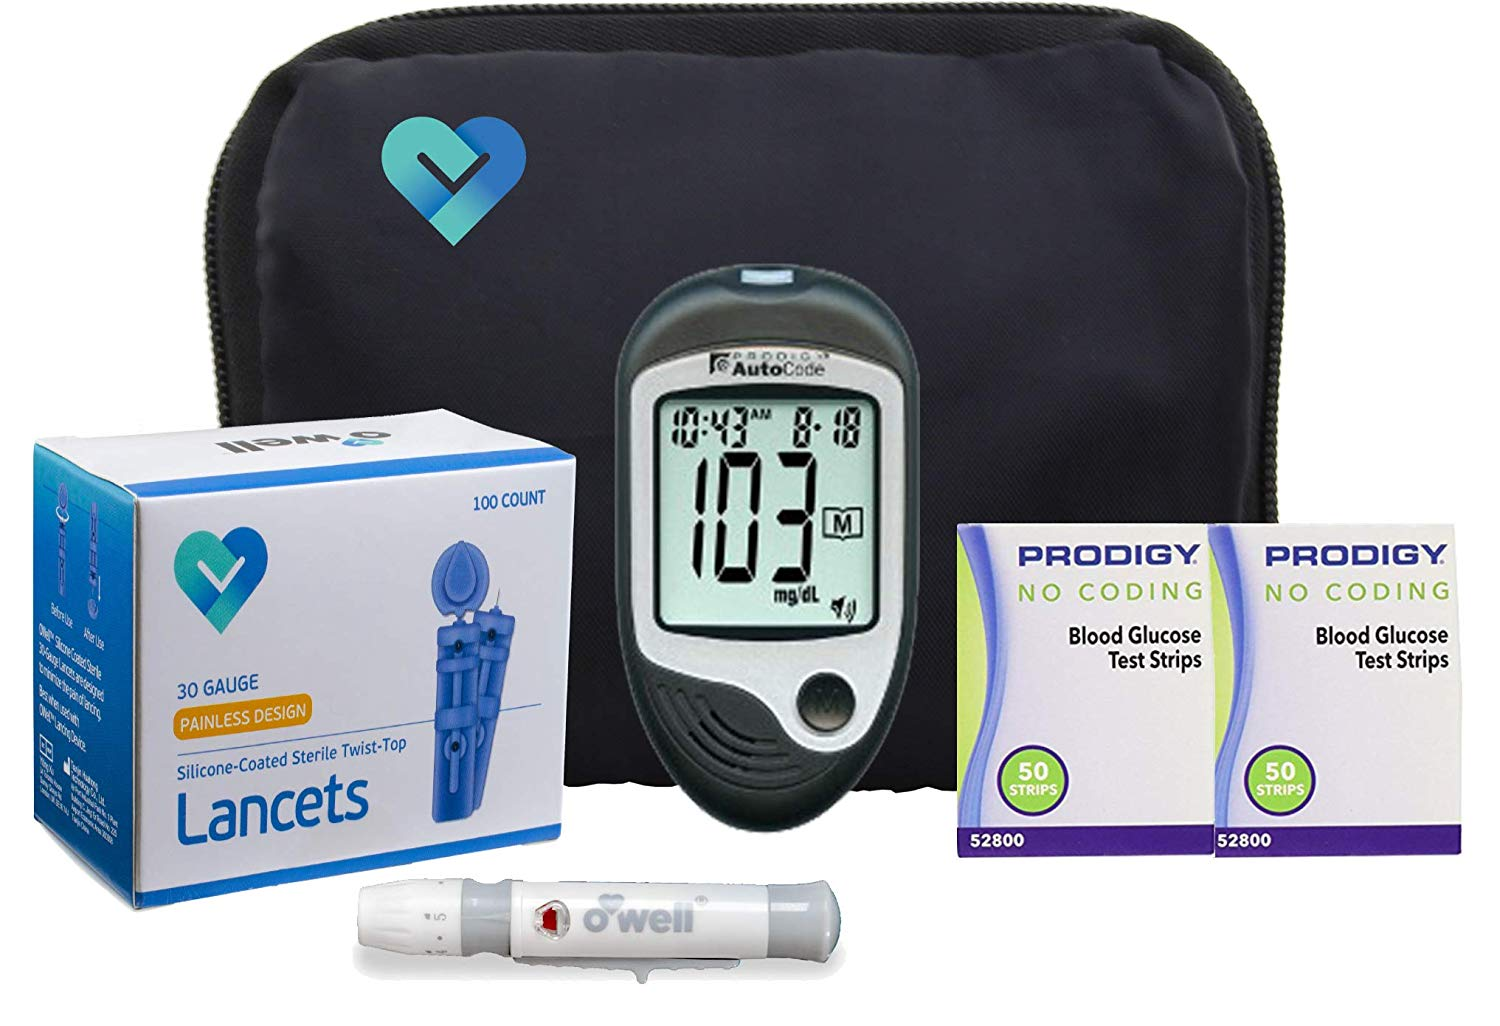 Review of O'WELL Diabetes Testing Kit + 100 Test Strips